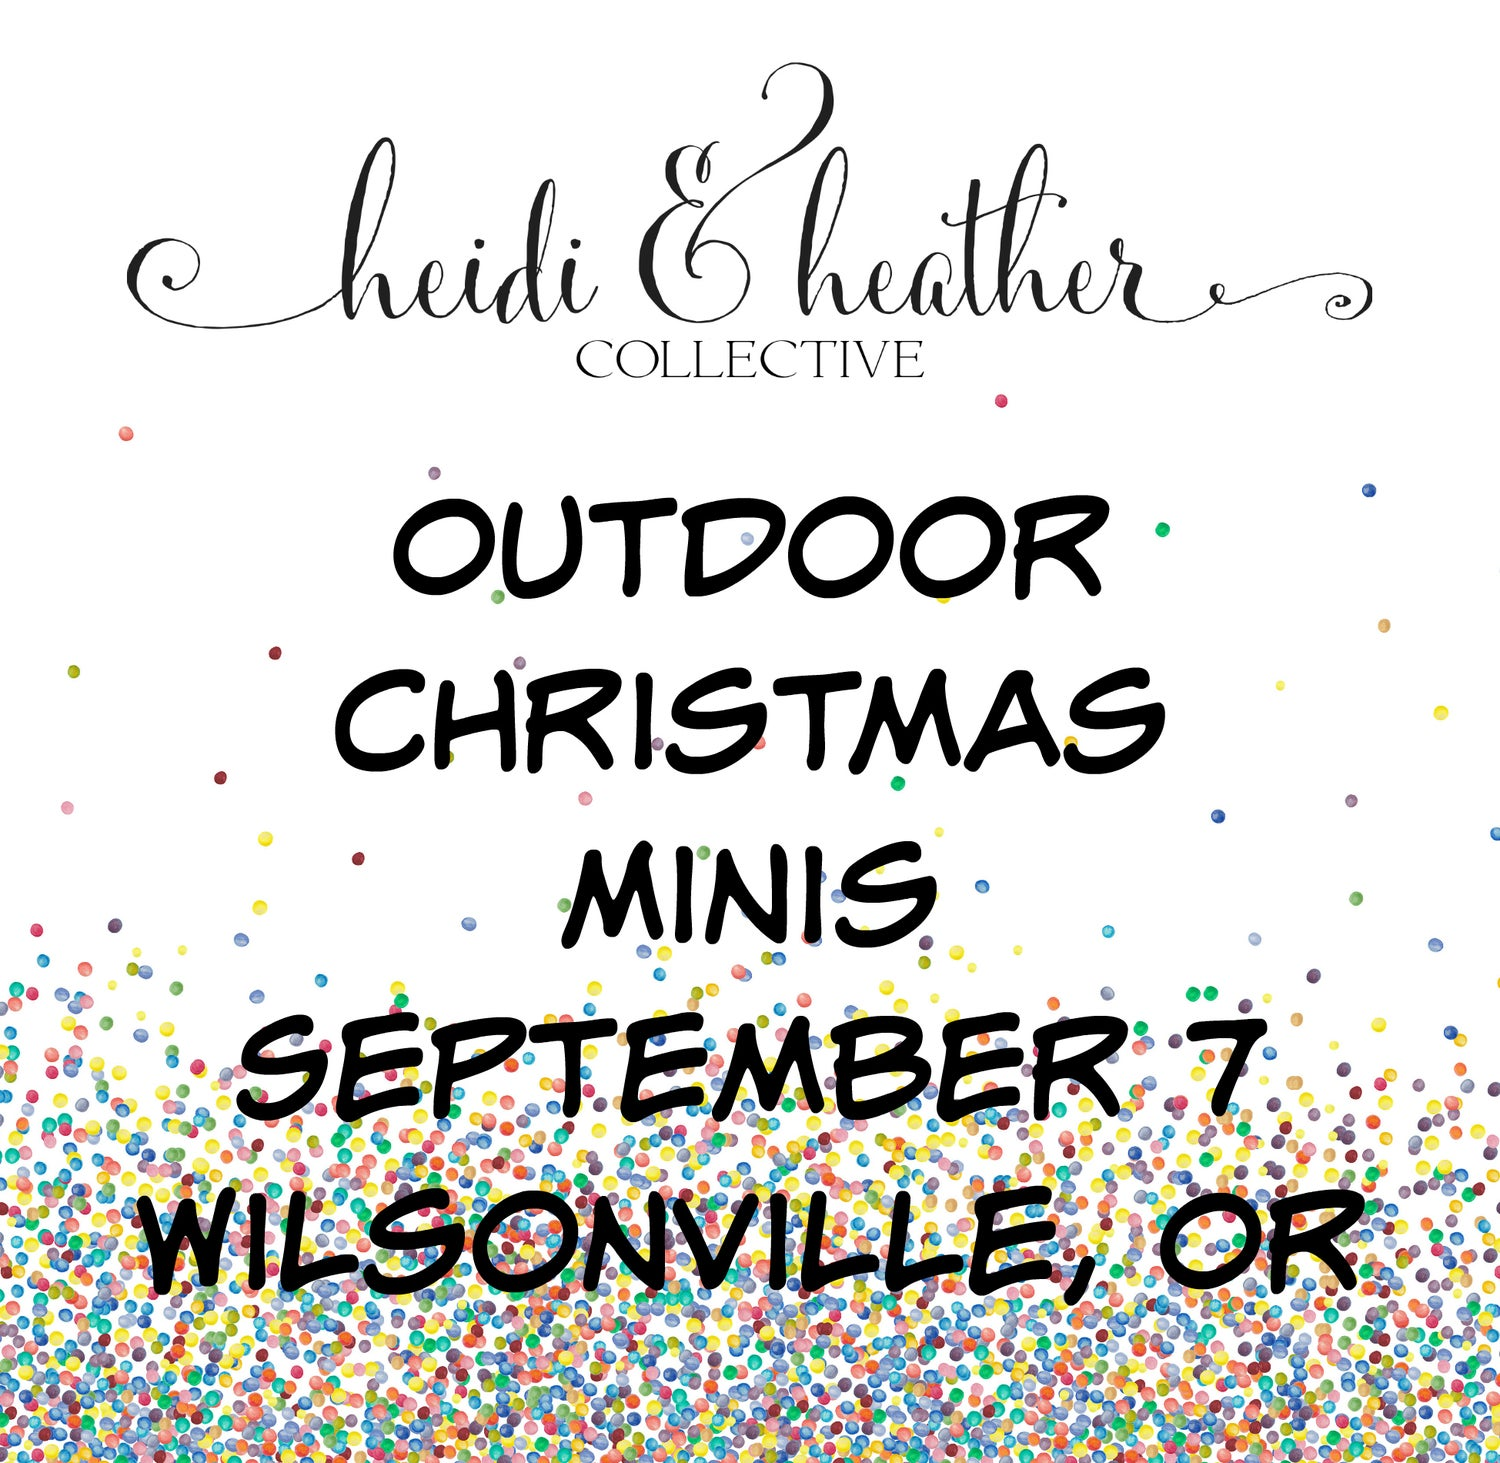 Image of Outdoor Christmas Minis, September 7th, 2019